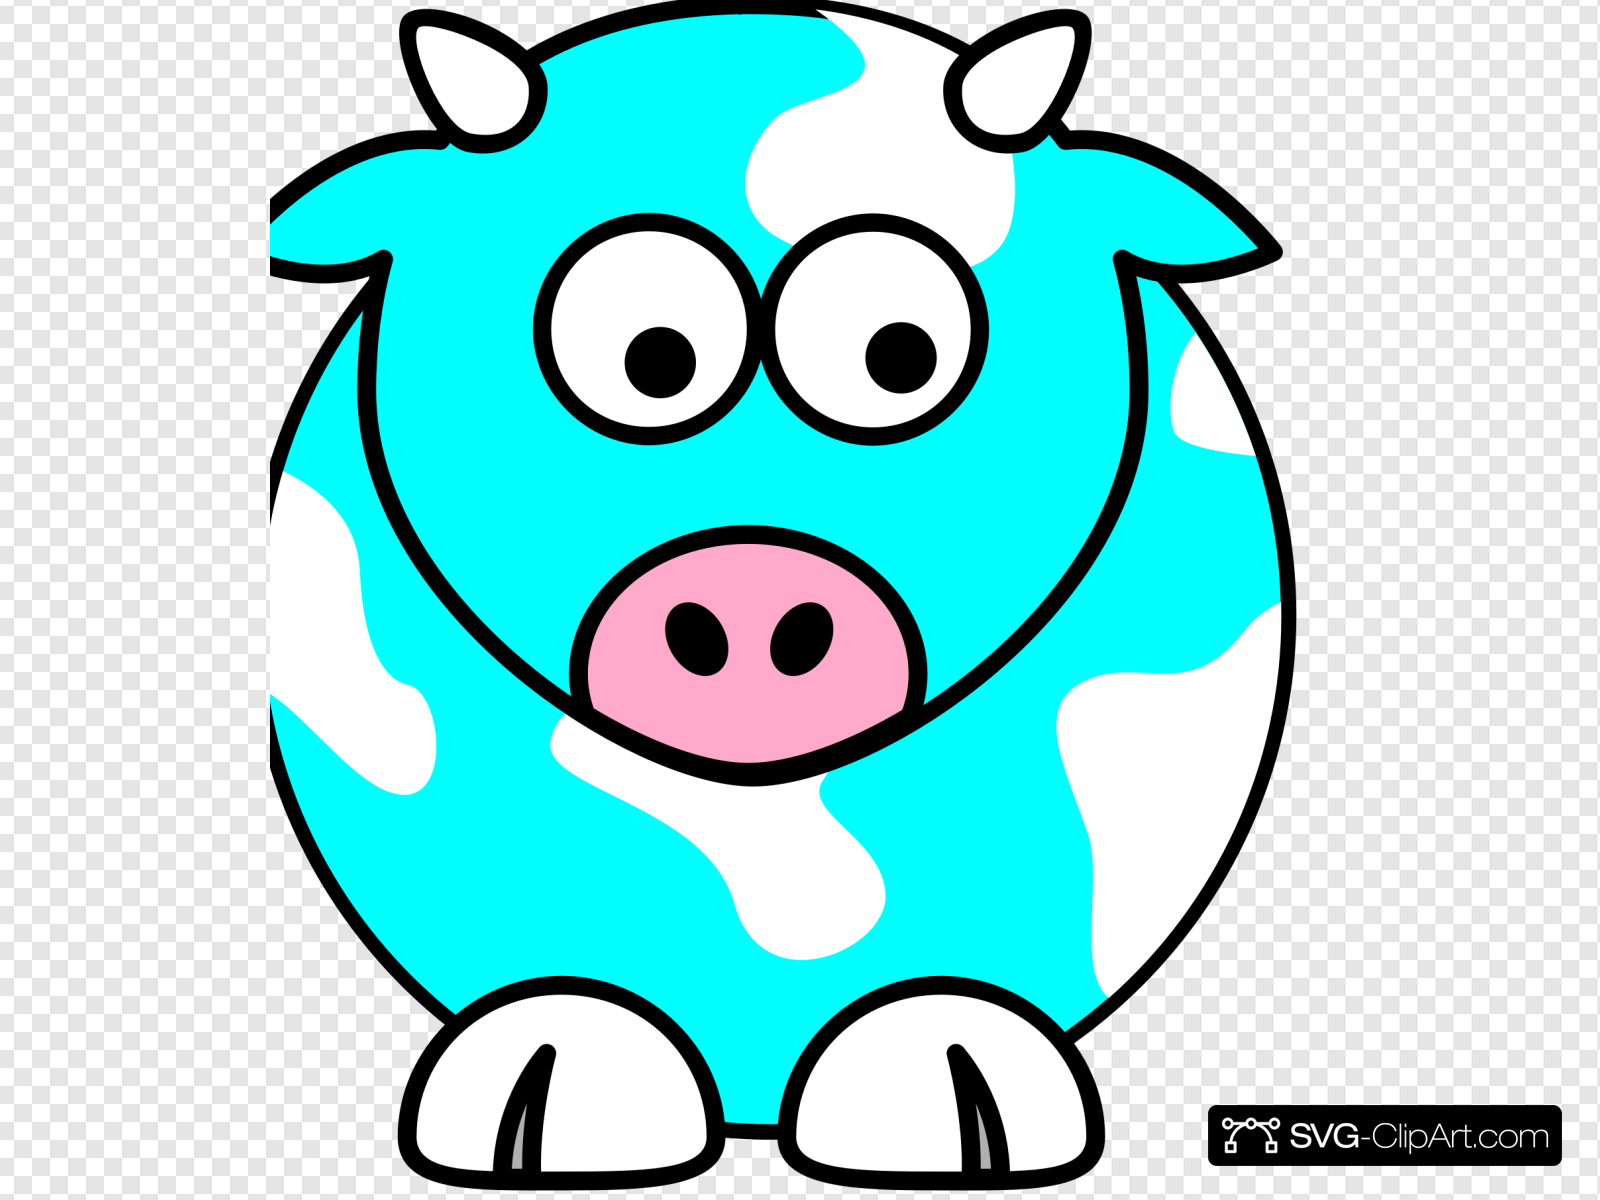 Blue Cow Clip art, Icon and SVG.